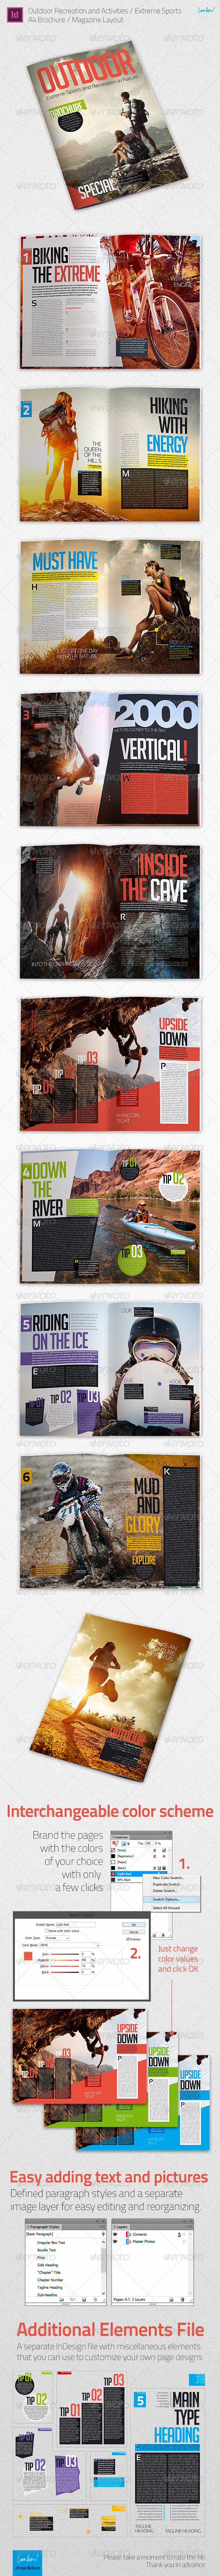 GraphicRiver Outdoor Recreation Extreme Sports A4 Brochure 5438104